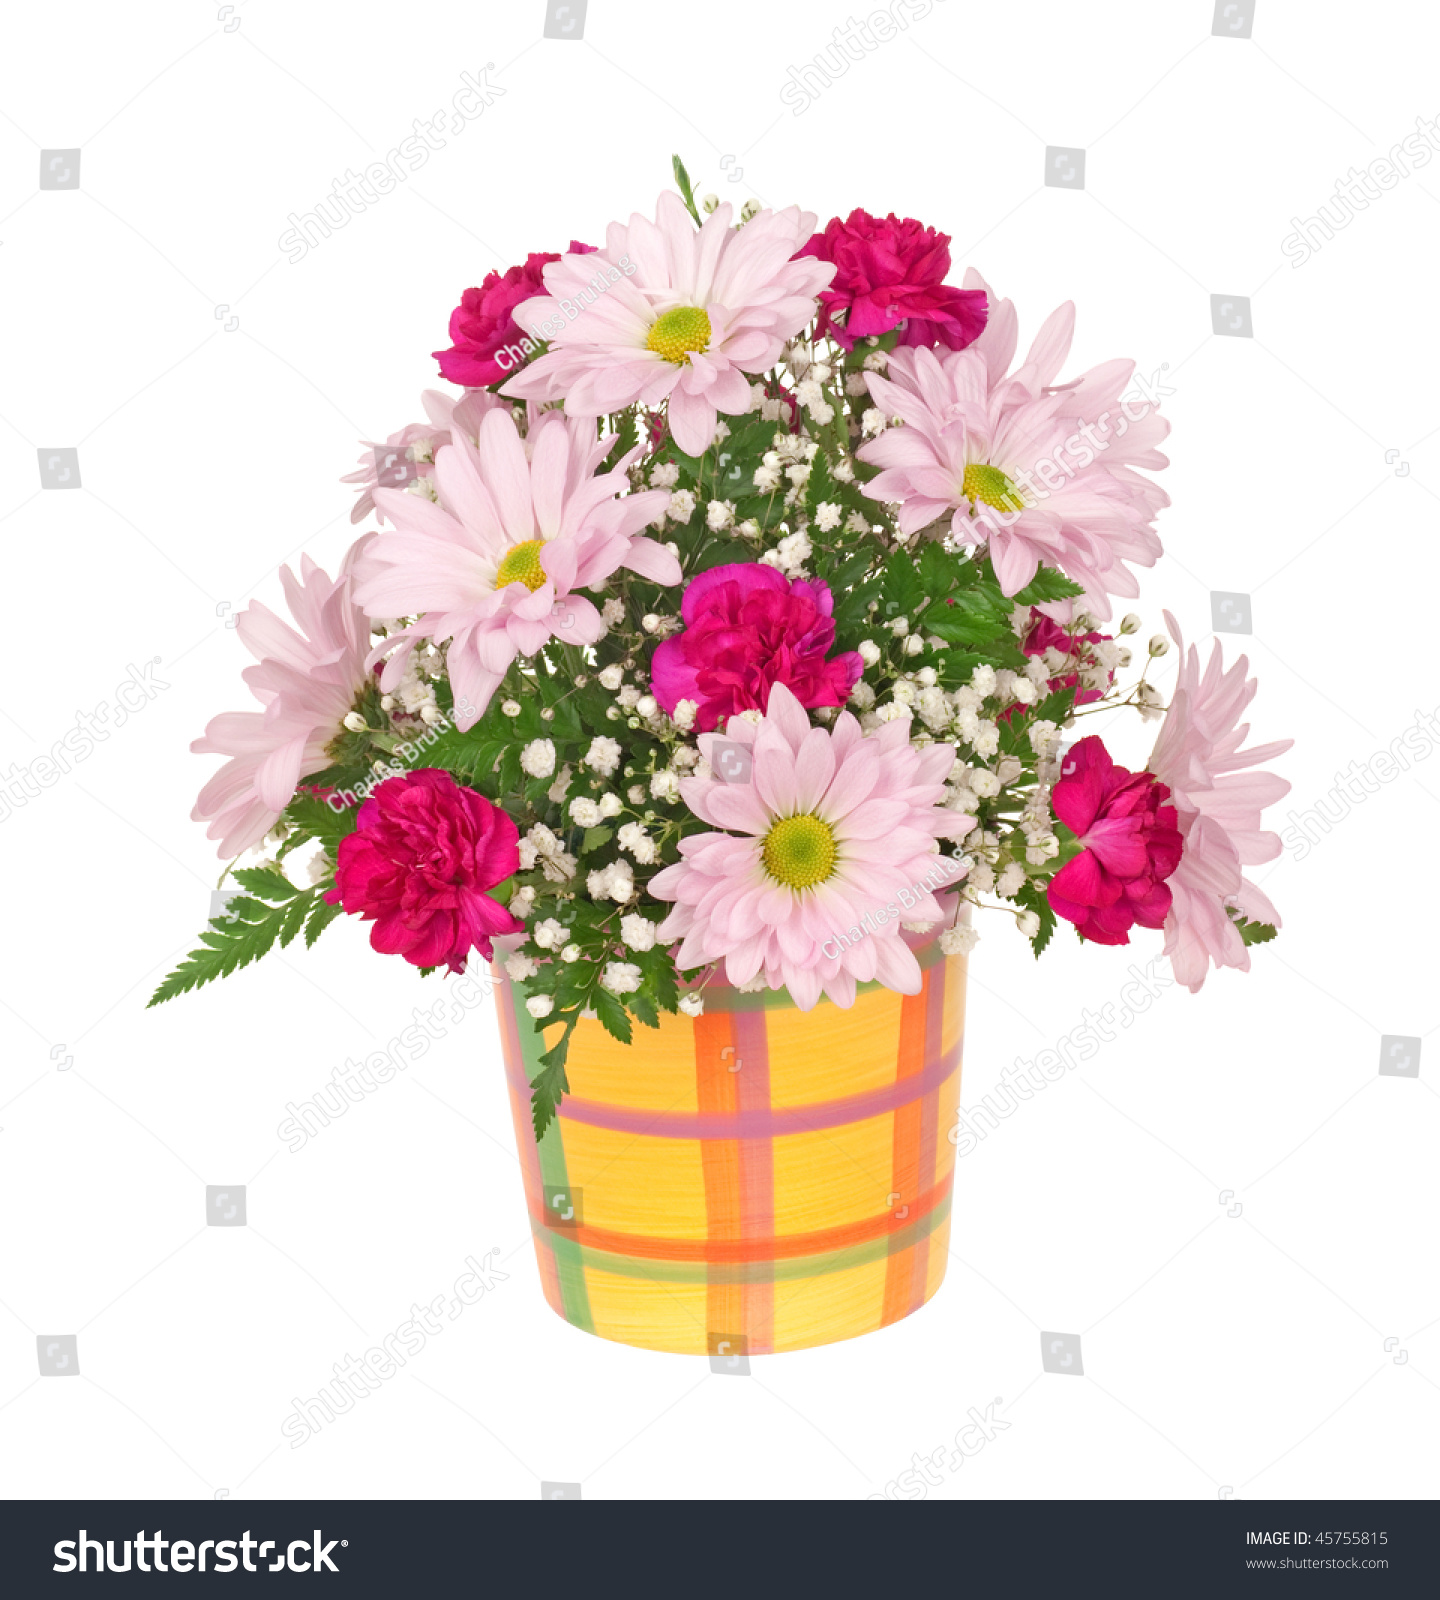 Carnation daisy babys breath flower bouquet stock photo royalty carnation daisy and babys breath flower bouquet in a pot isolated on white izmirmasajfo